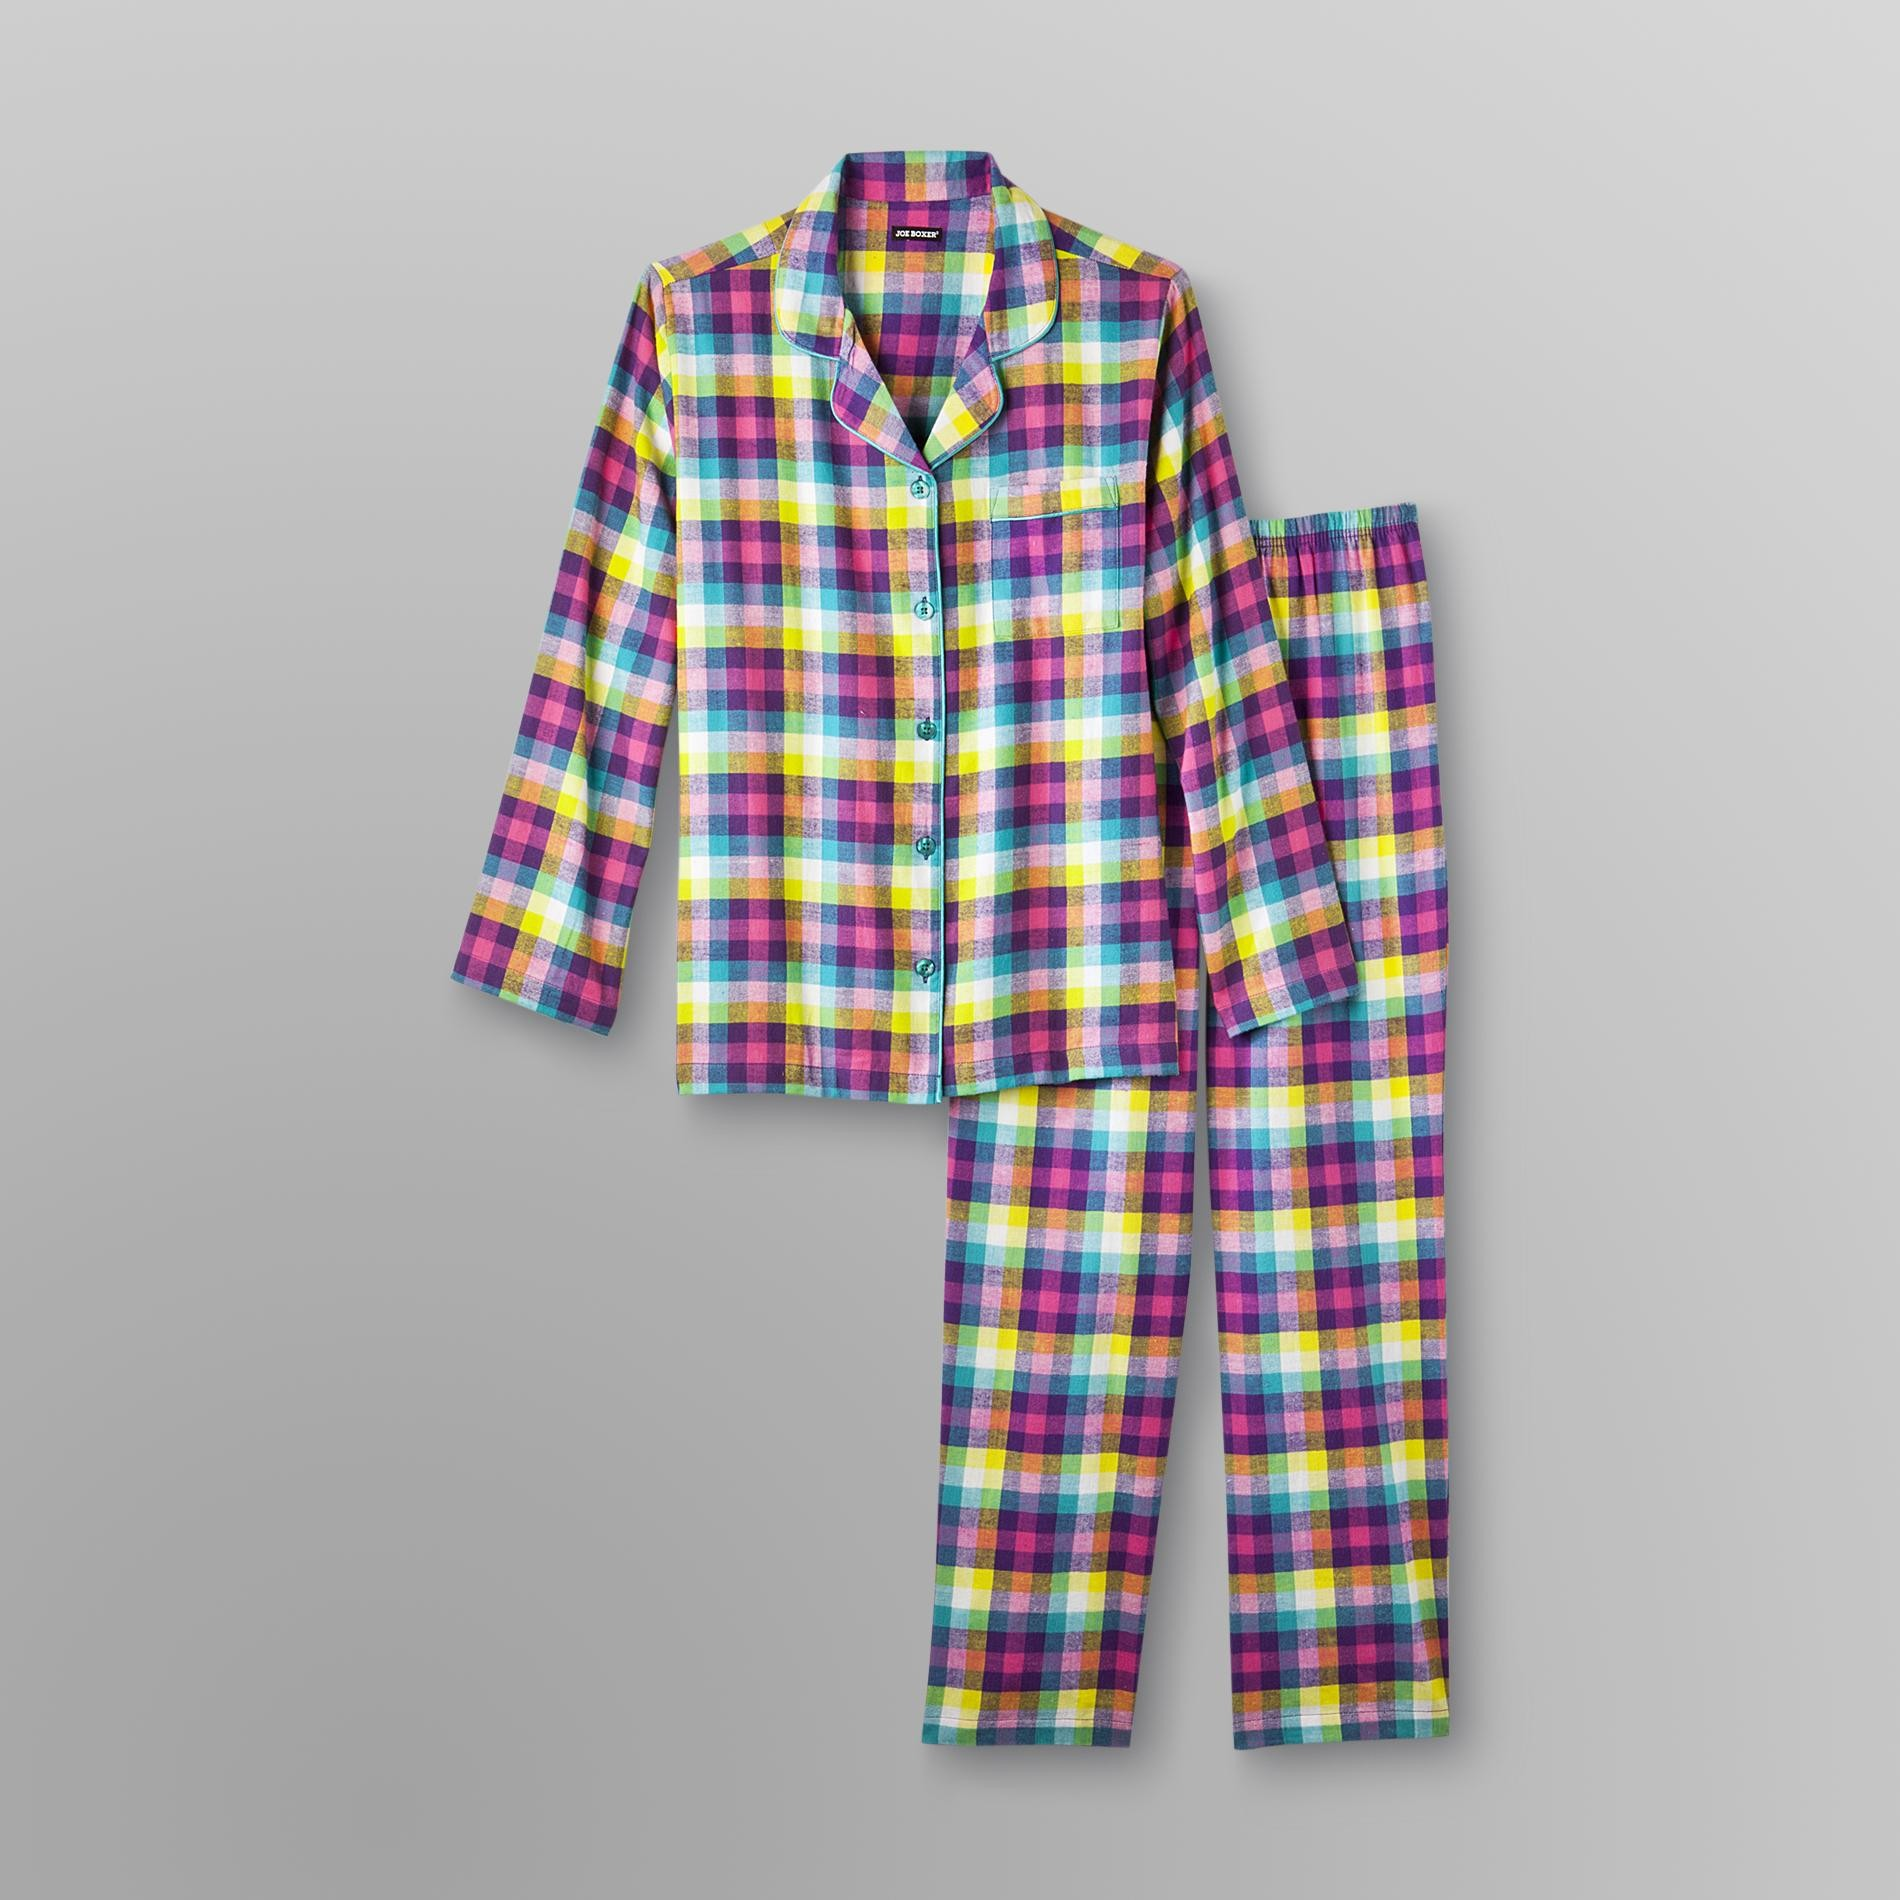 Joe Boxer Women's Flannel Pajamas - Plaid